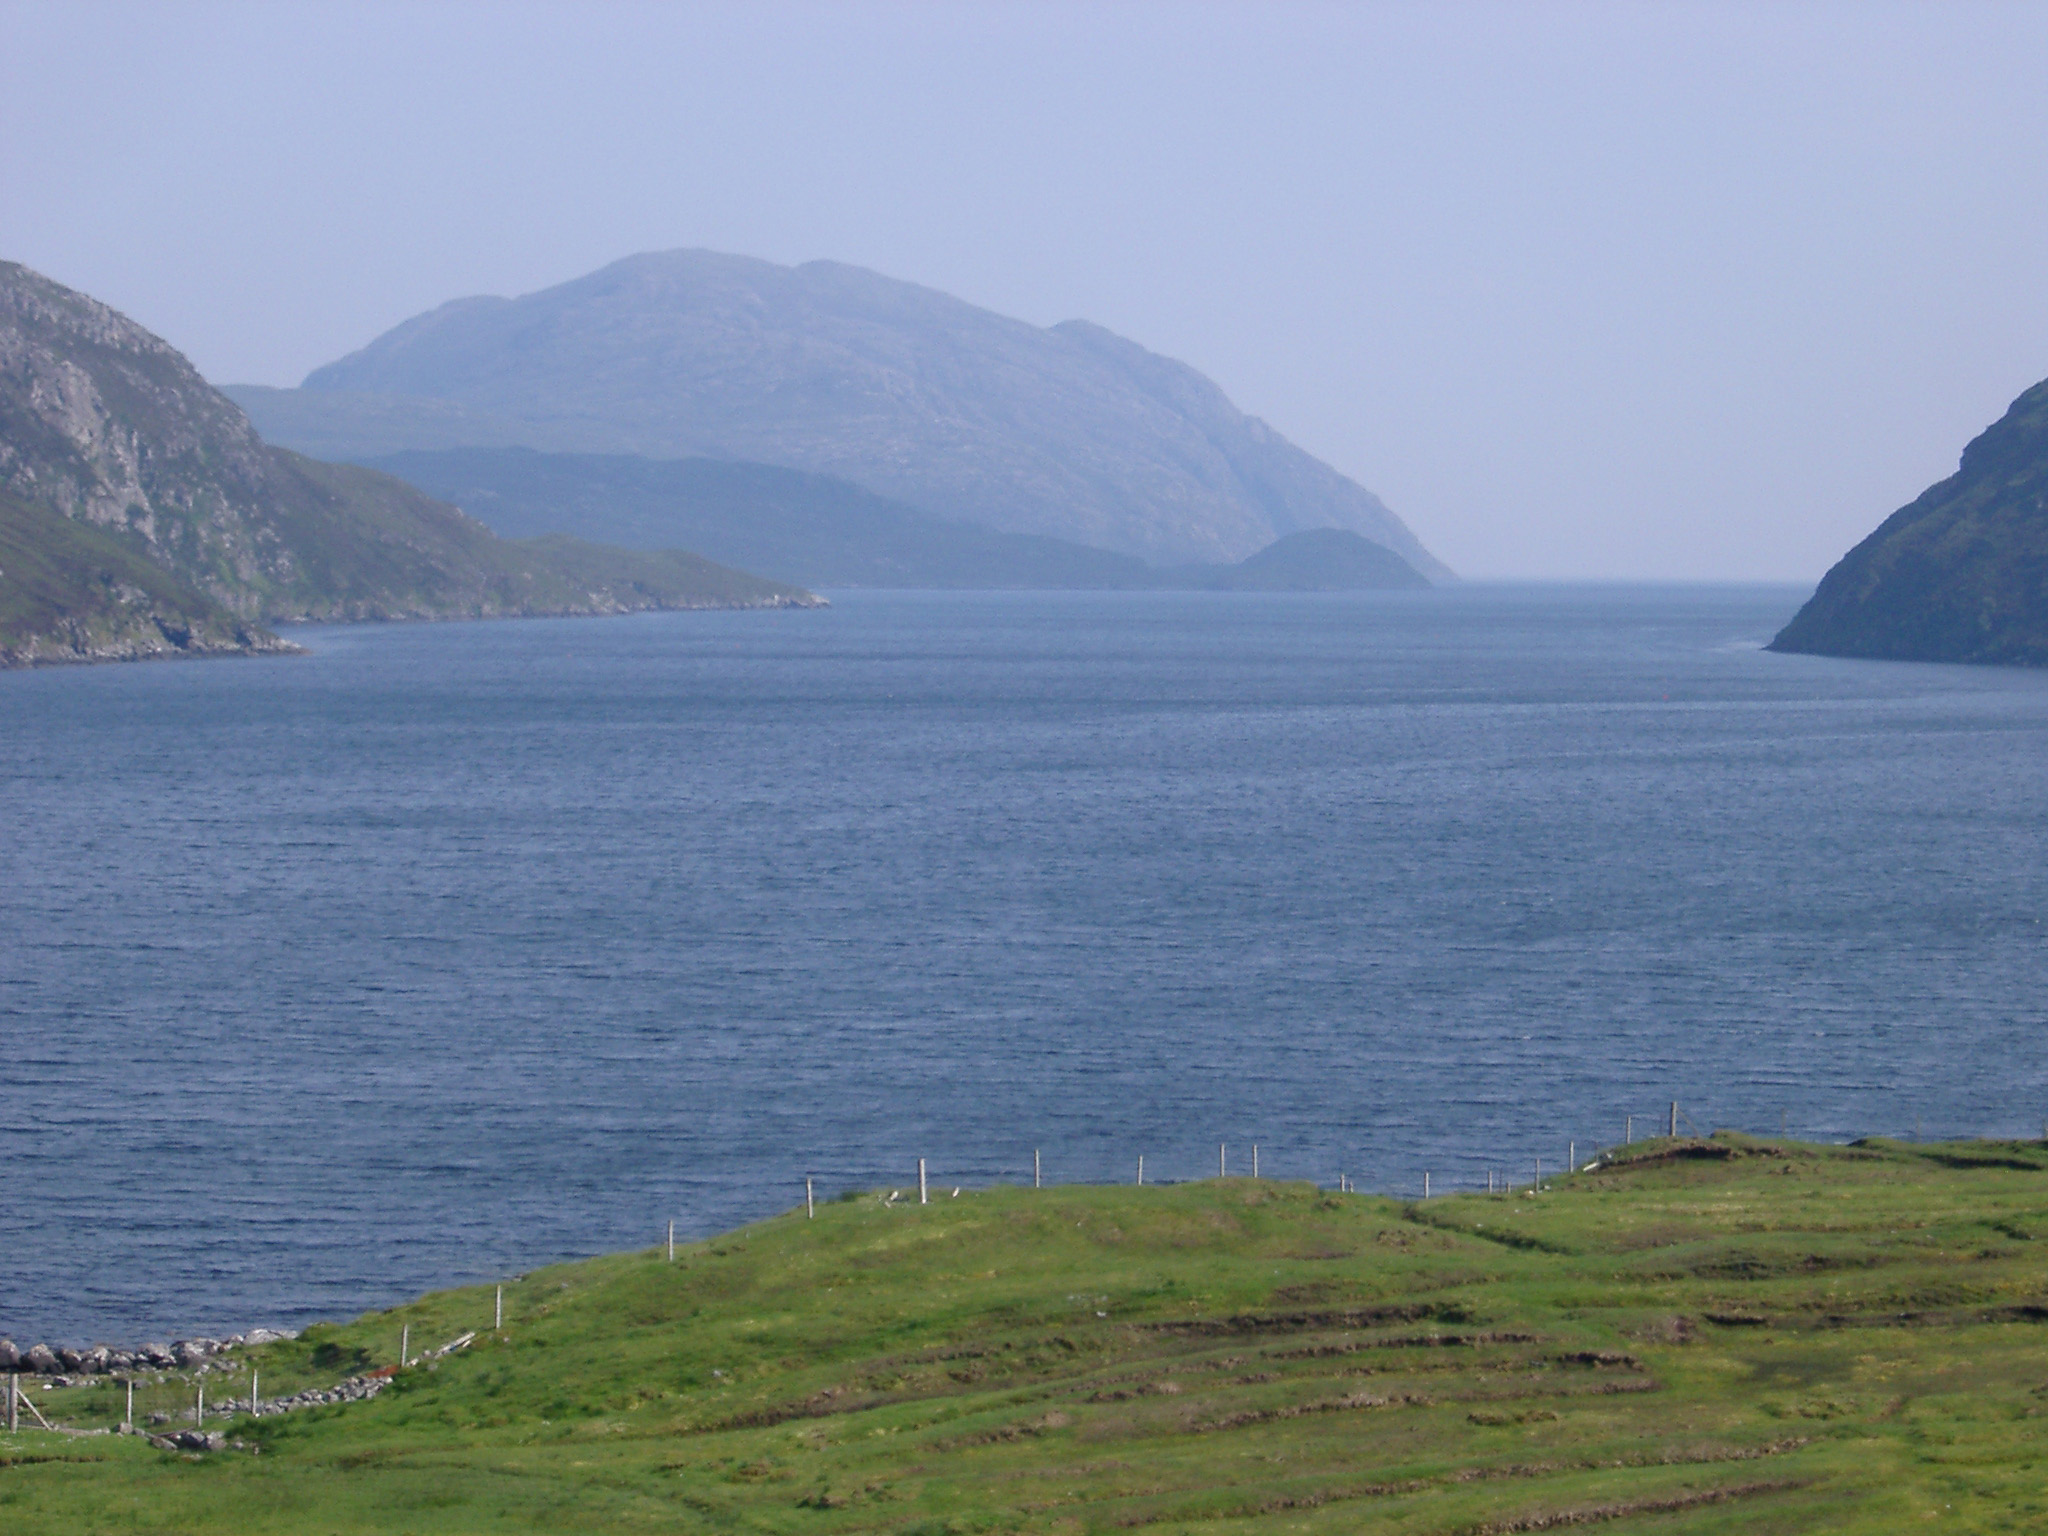 Coastal scene in the Inner Hebrides with a tranquil sheltered loch surrounded by mountain peaks, Scotland